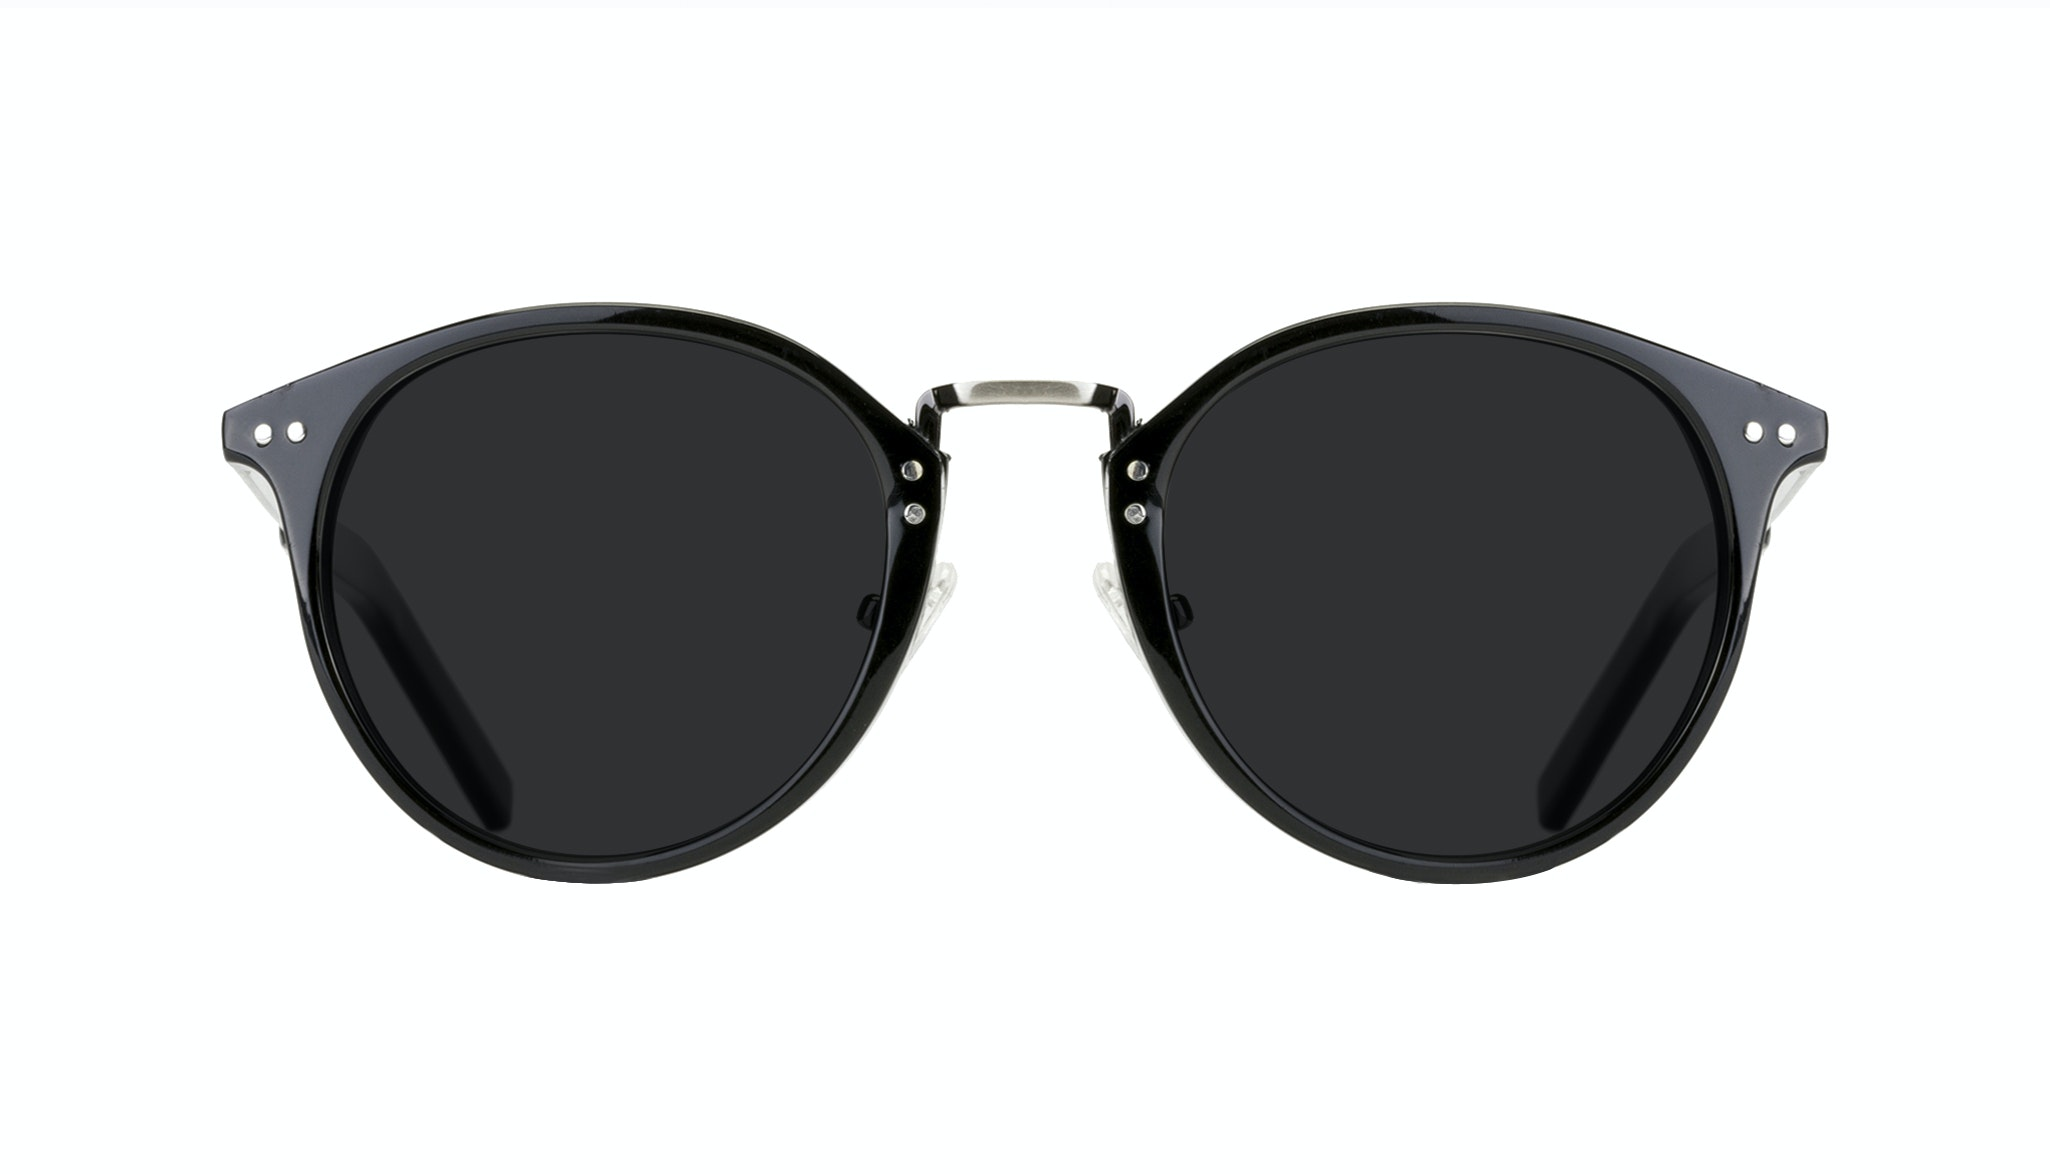 Affordable Fashion Glasses Round Sunglasses Men Truly Black Front